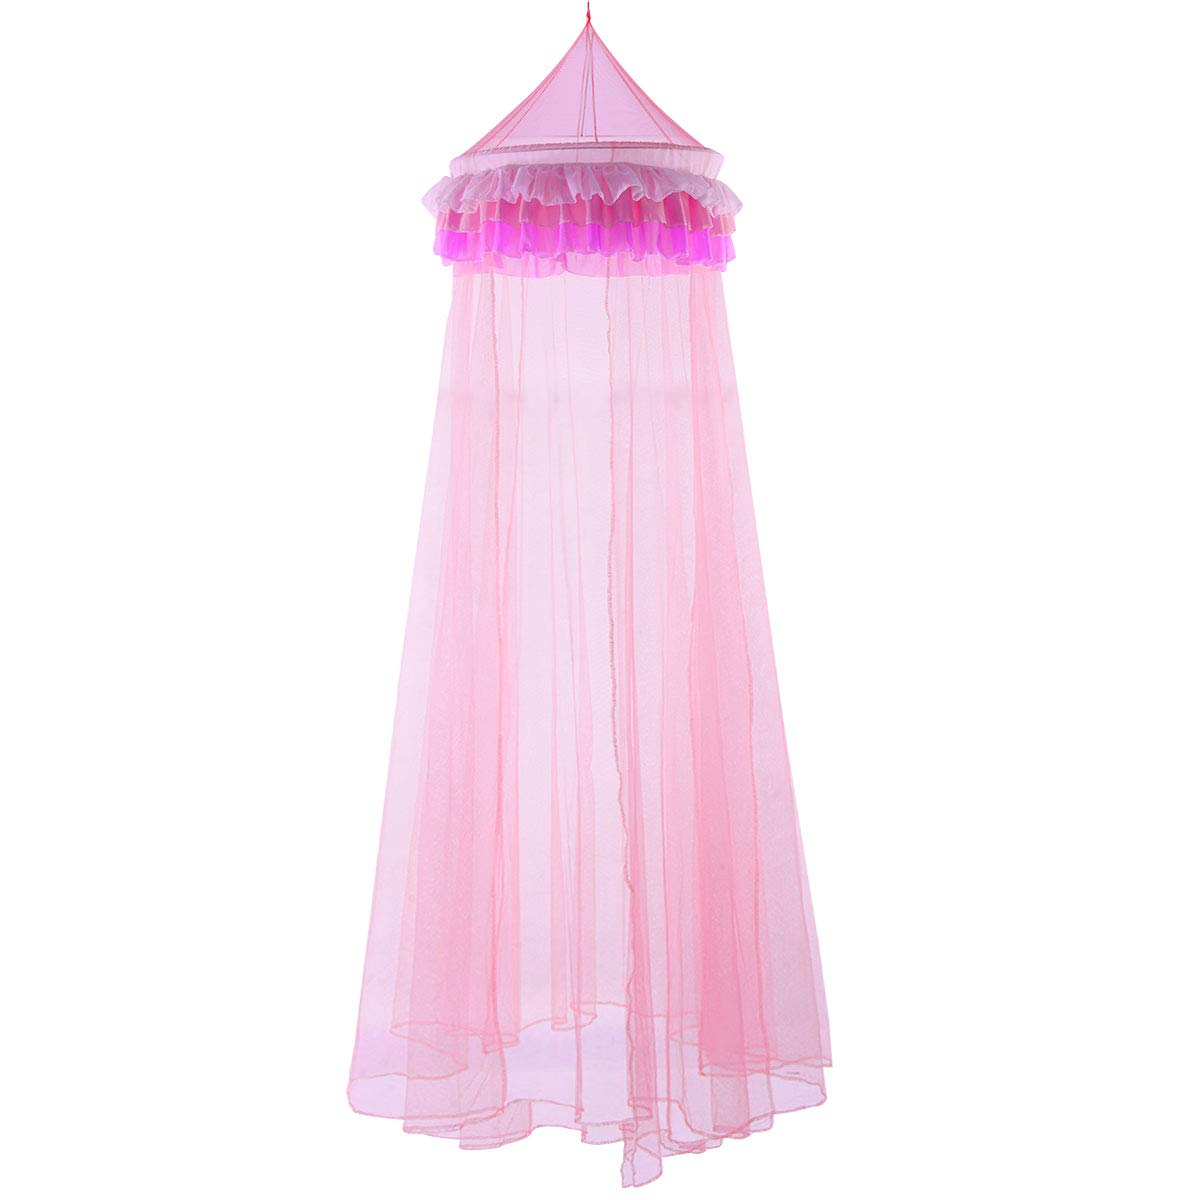 HAPPYGRILL Bed Canopy Mosquito Net Princess Fairy Net with Elegant Ruffle Lace for Girls and Baby (Pink)